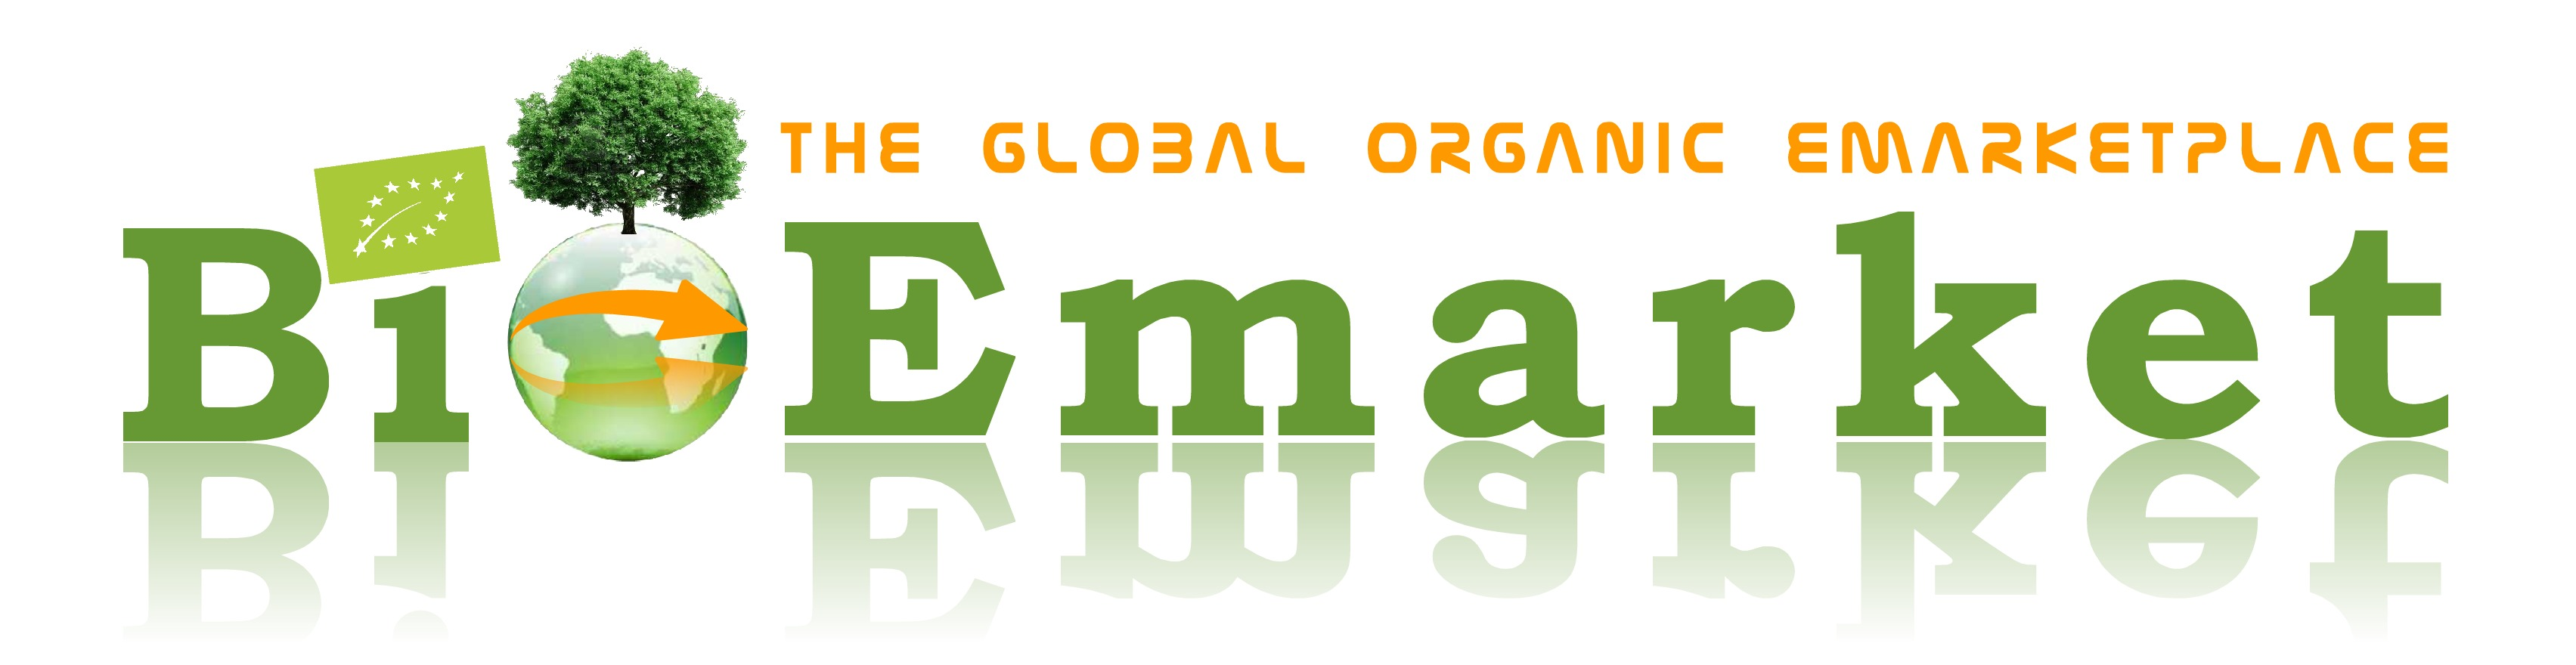 BioEmarket supports Global Organic Market